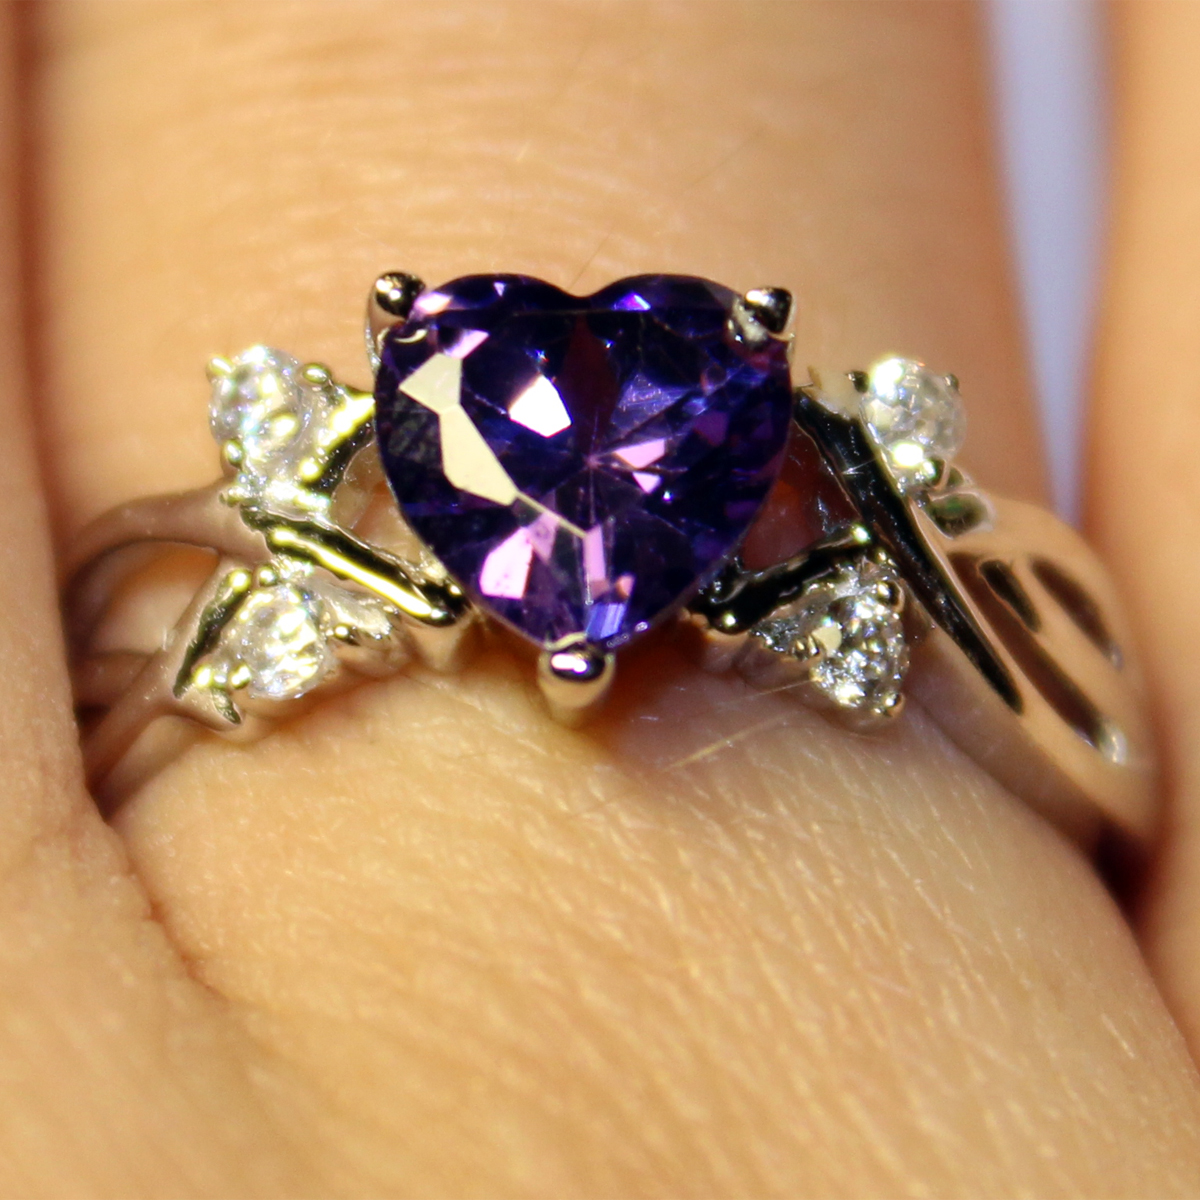 w purple heart jewelry wedding dino products engagement dinosaur bone ring rings wood sapphire white